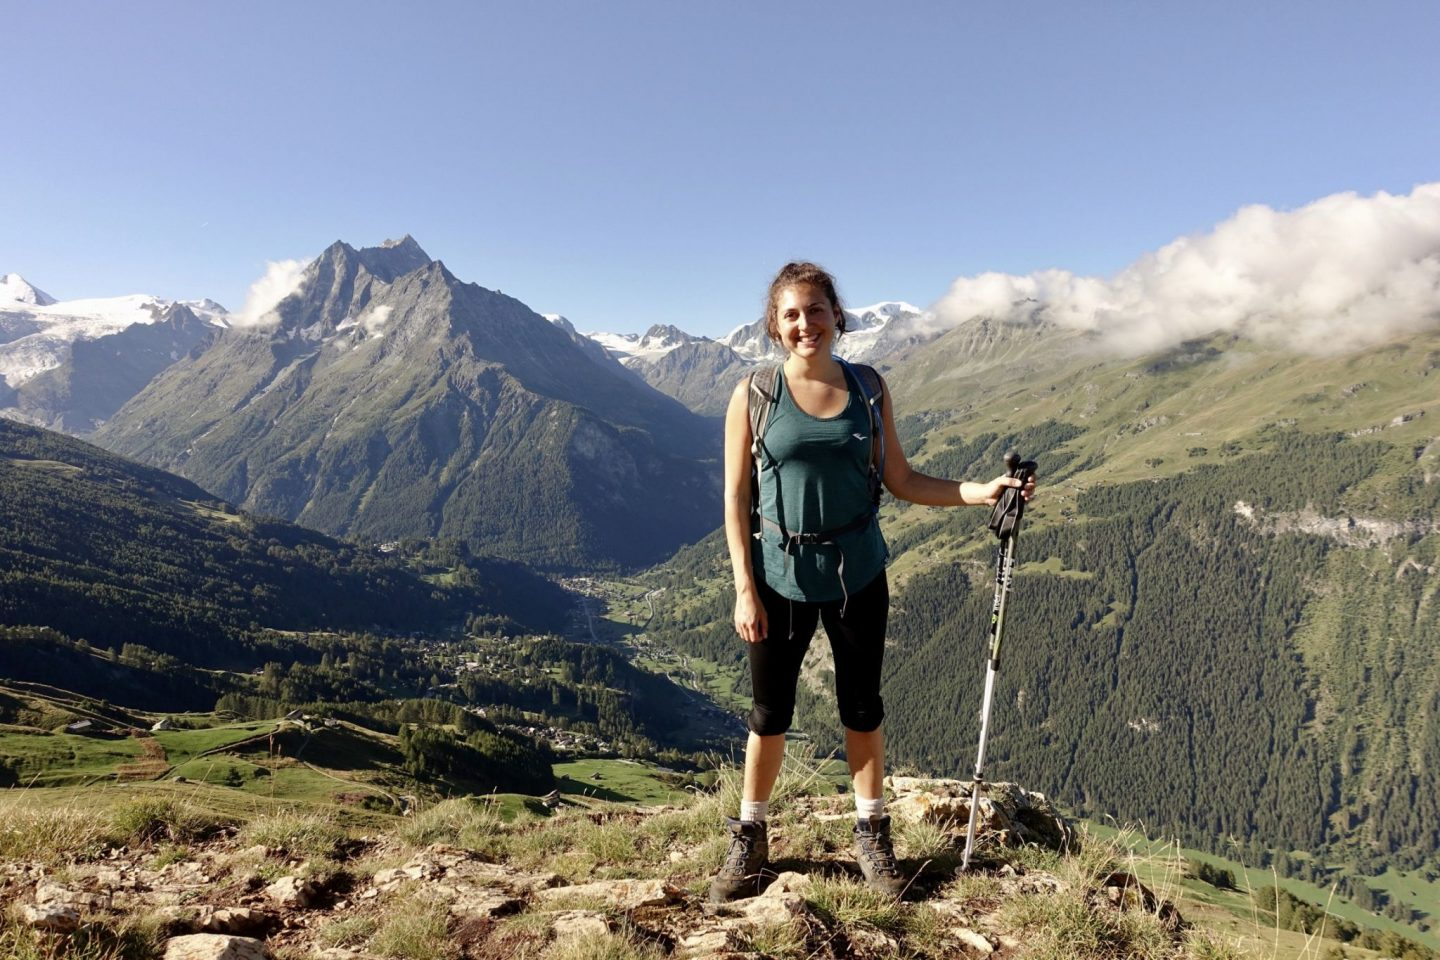 Nell hiking with a stunning mountain and valley in the background, showing off her boots and hiking poles as her hiking essentials